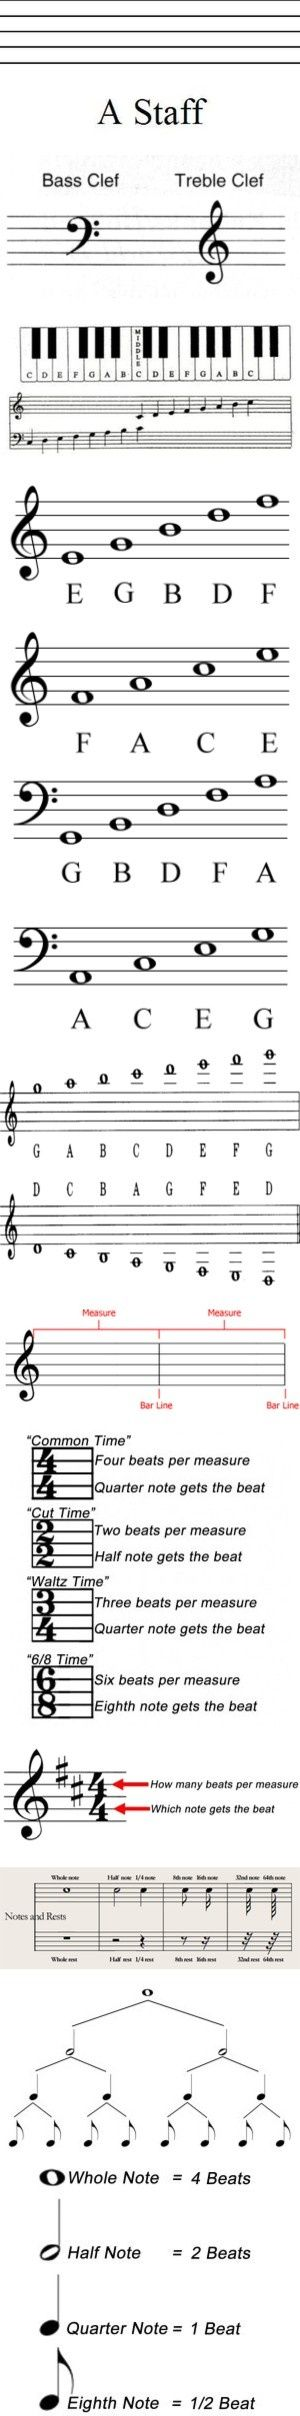 Piano easy piano blues sheet music : How To Read Music | Music Education | Pinterest | Pianos, Polyvore ...